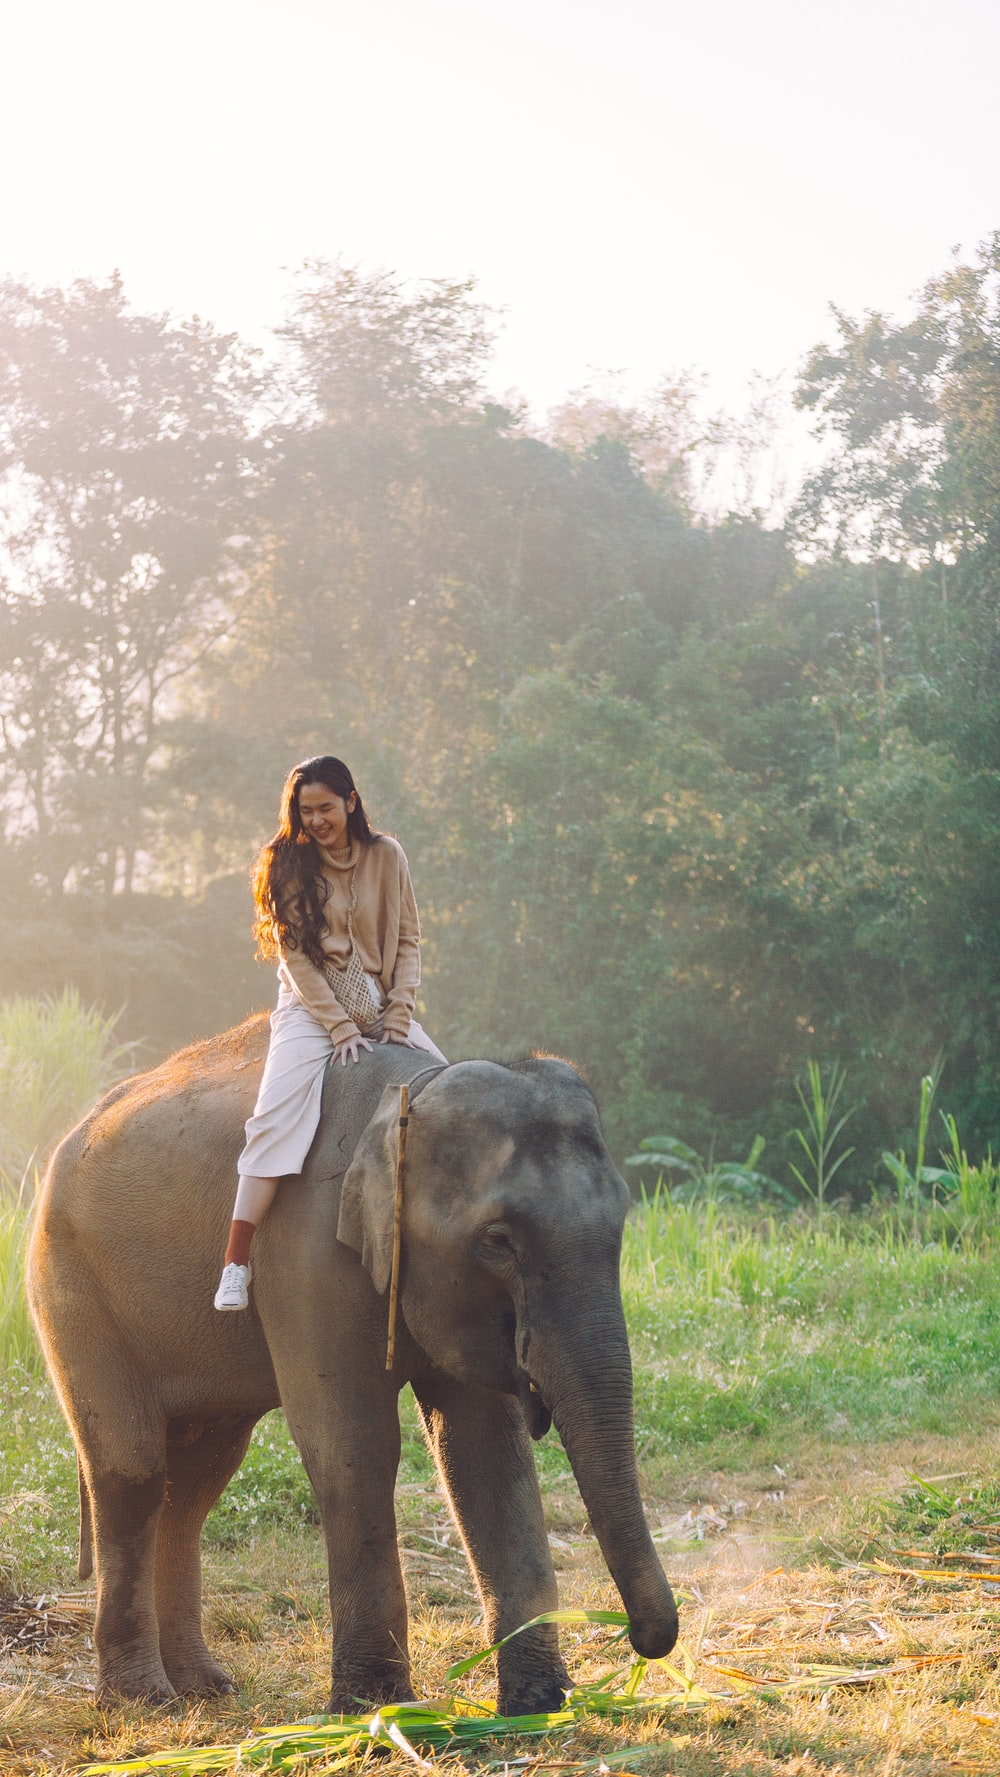 woman riding on black elephant during daytime